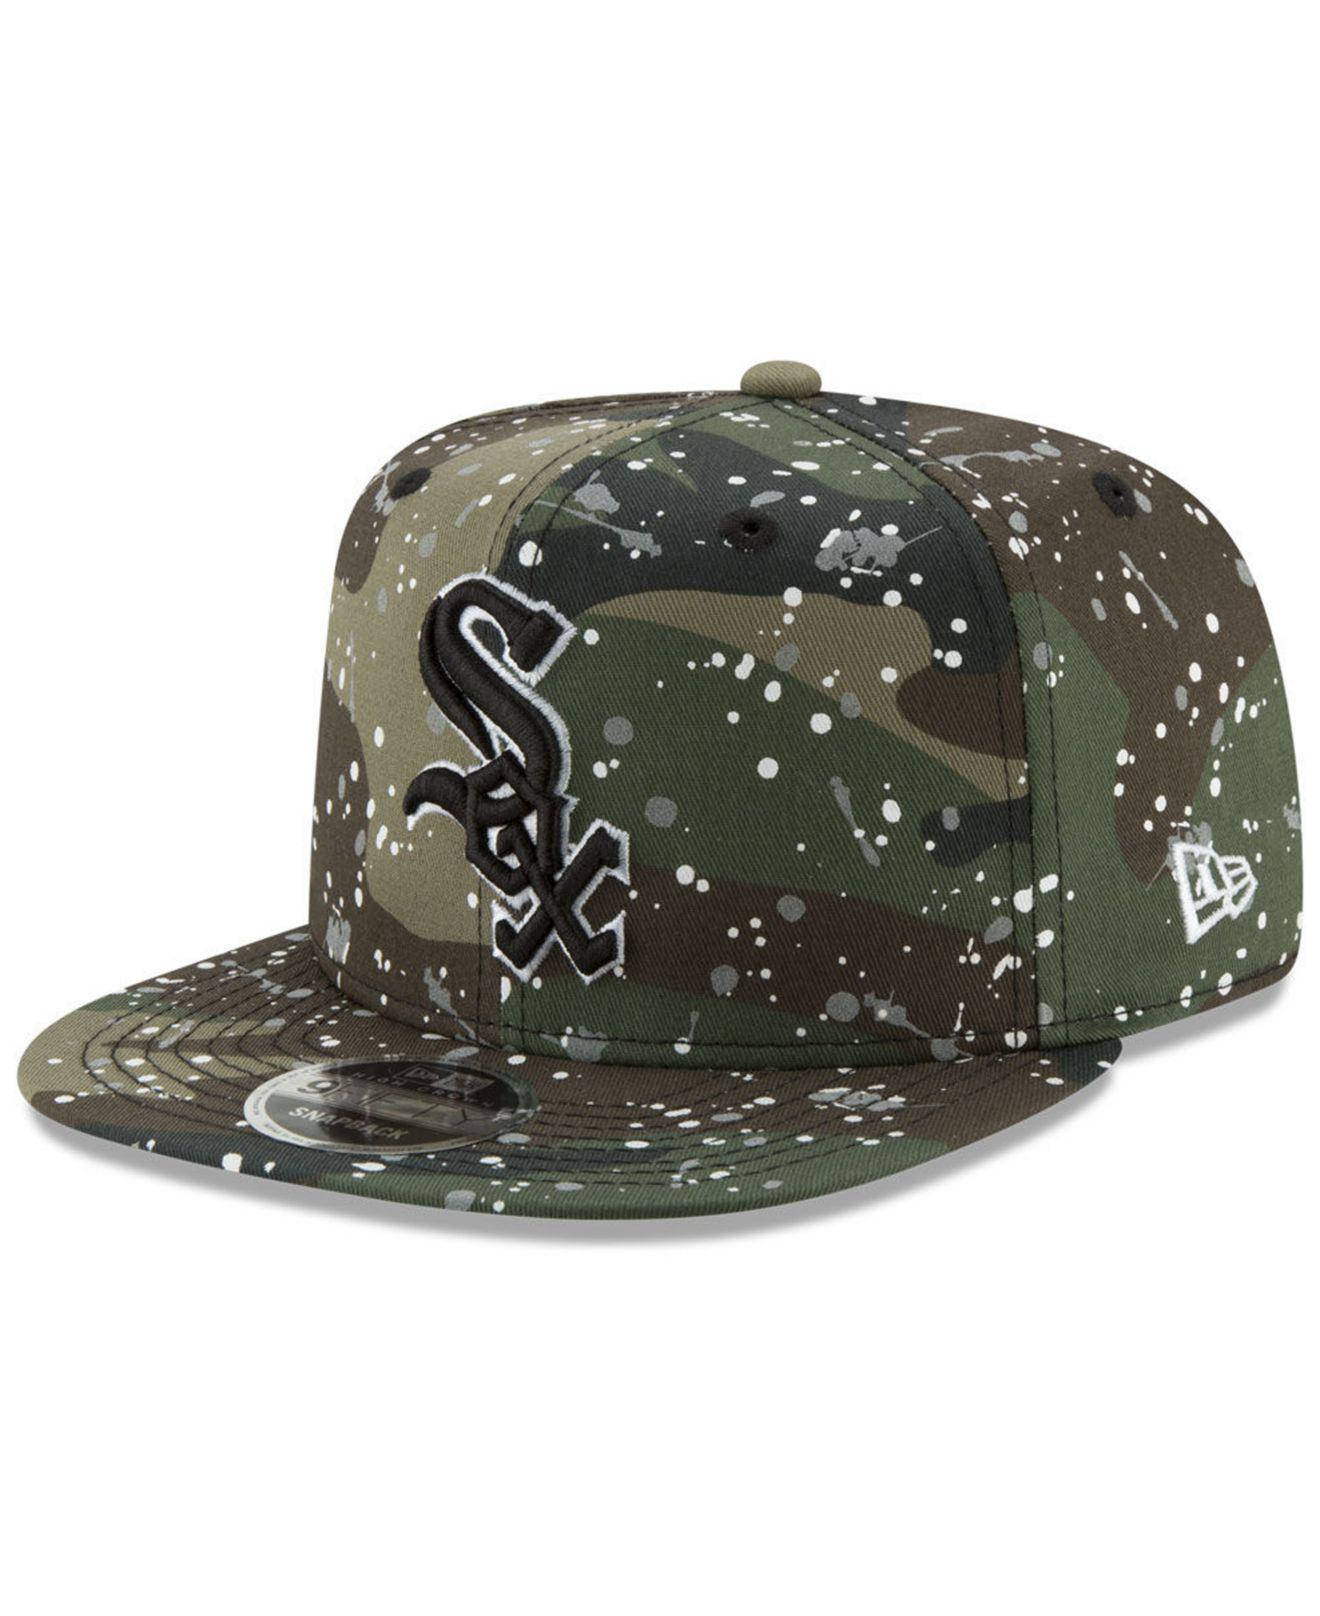 ... new era 20721853 black 2190e eb753  ebay ktz. mens green chicago white  sox camo spec 9fifty snapback cap 393e6 493da a888be87574c